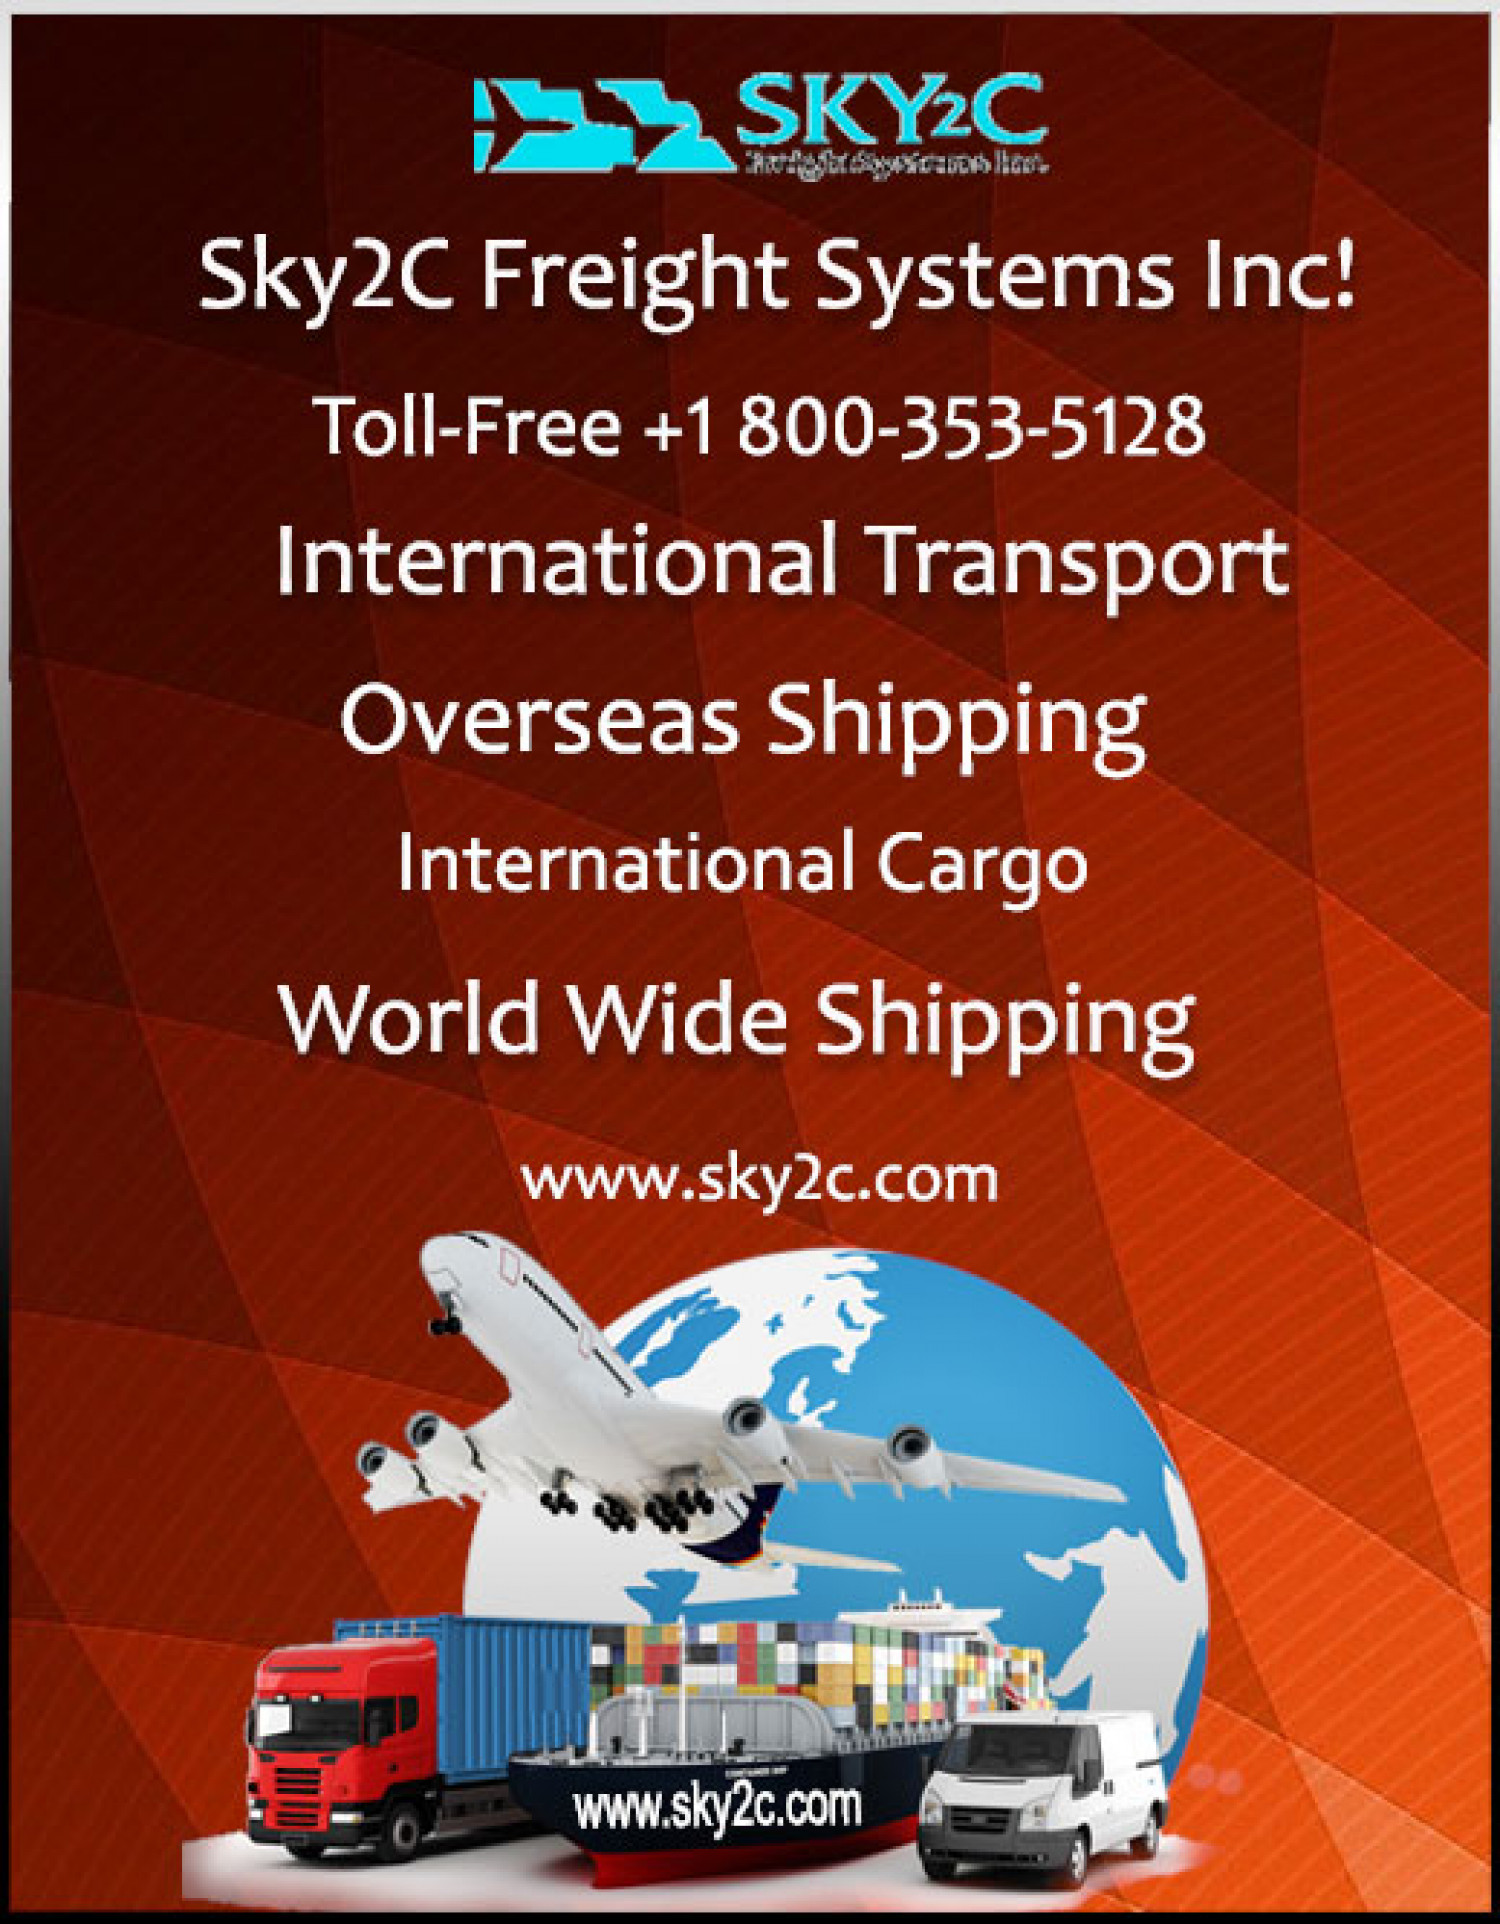 World Wide Shipping Services Infographic